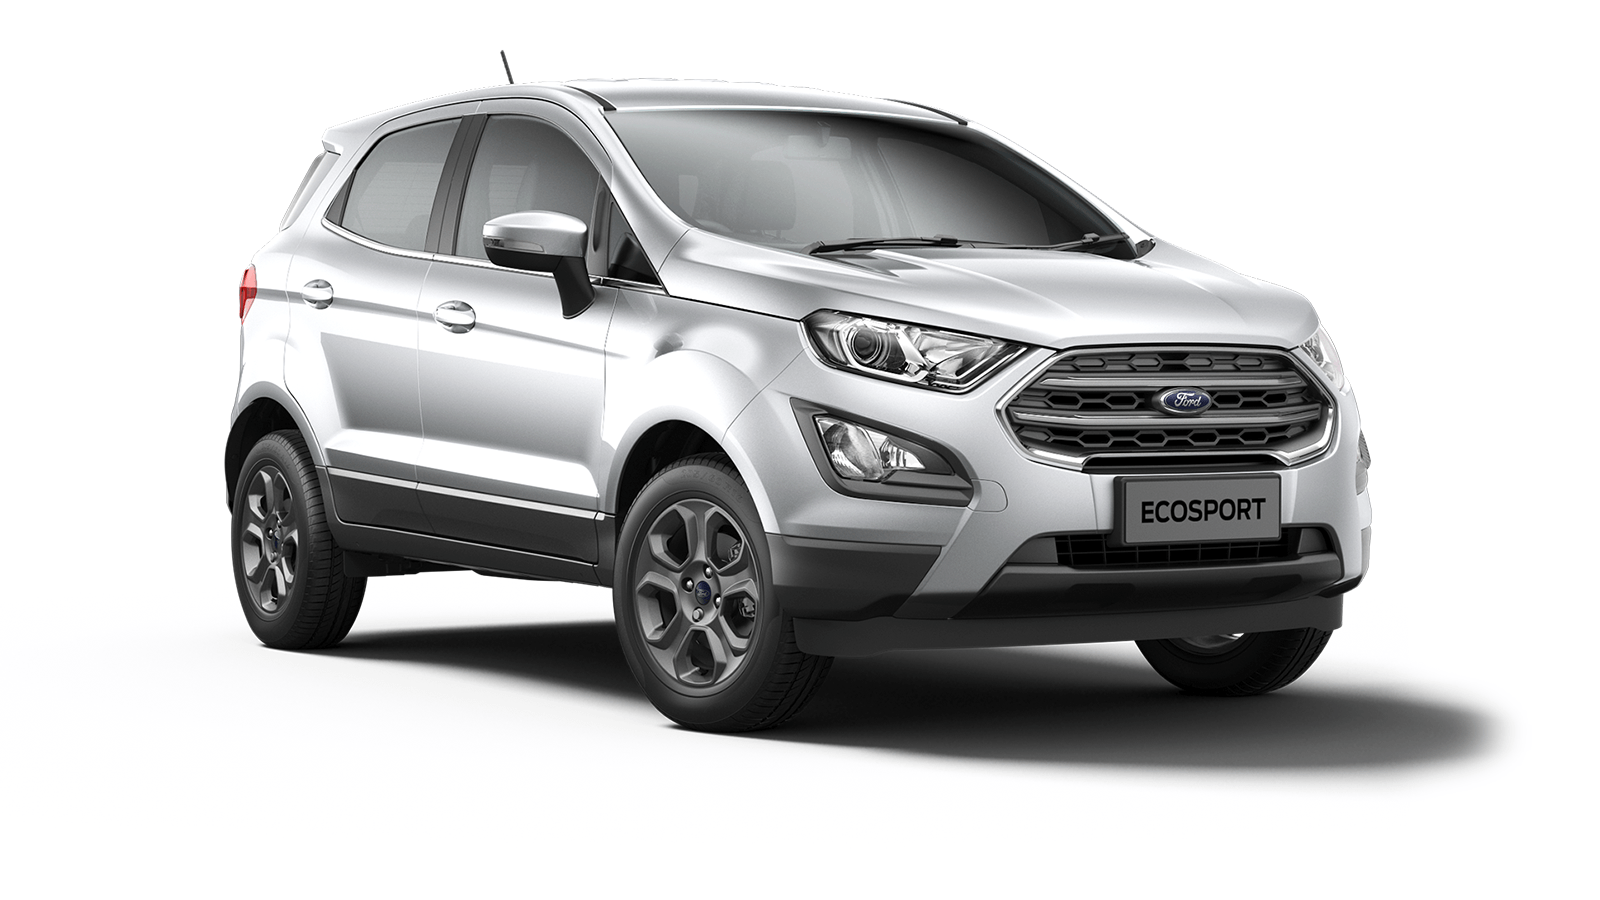 New Ford ECOSPORT Zetec 1.0 EcoBoost 100PS at Tremont Garage